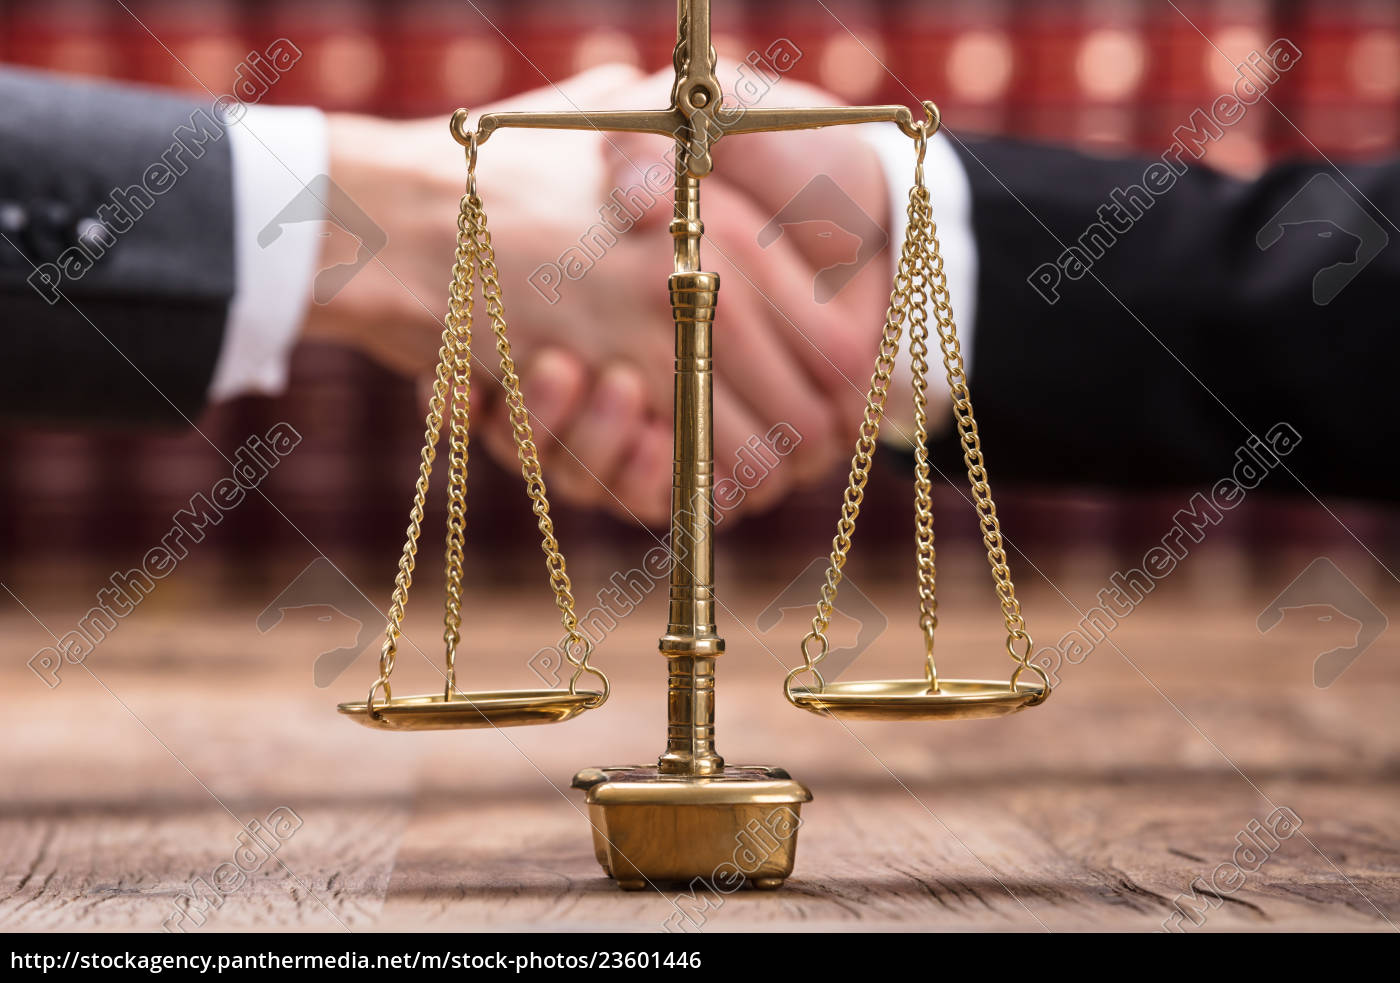 close-up, of, justice, scale, on, wooden - 23601446